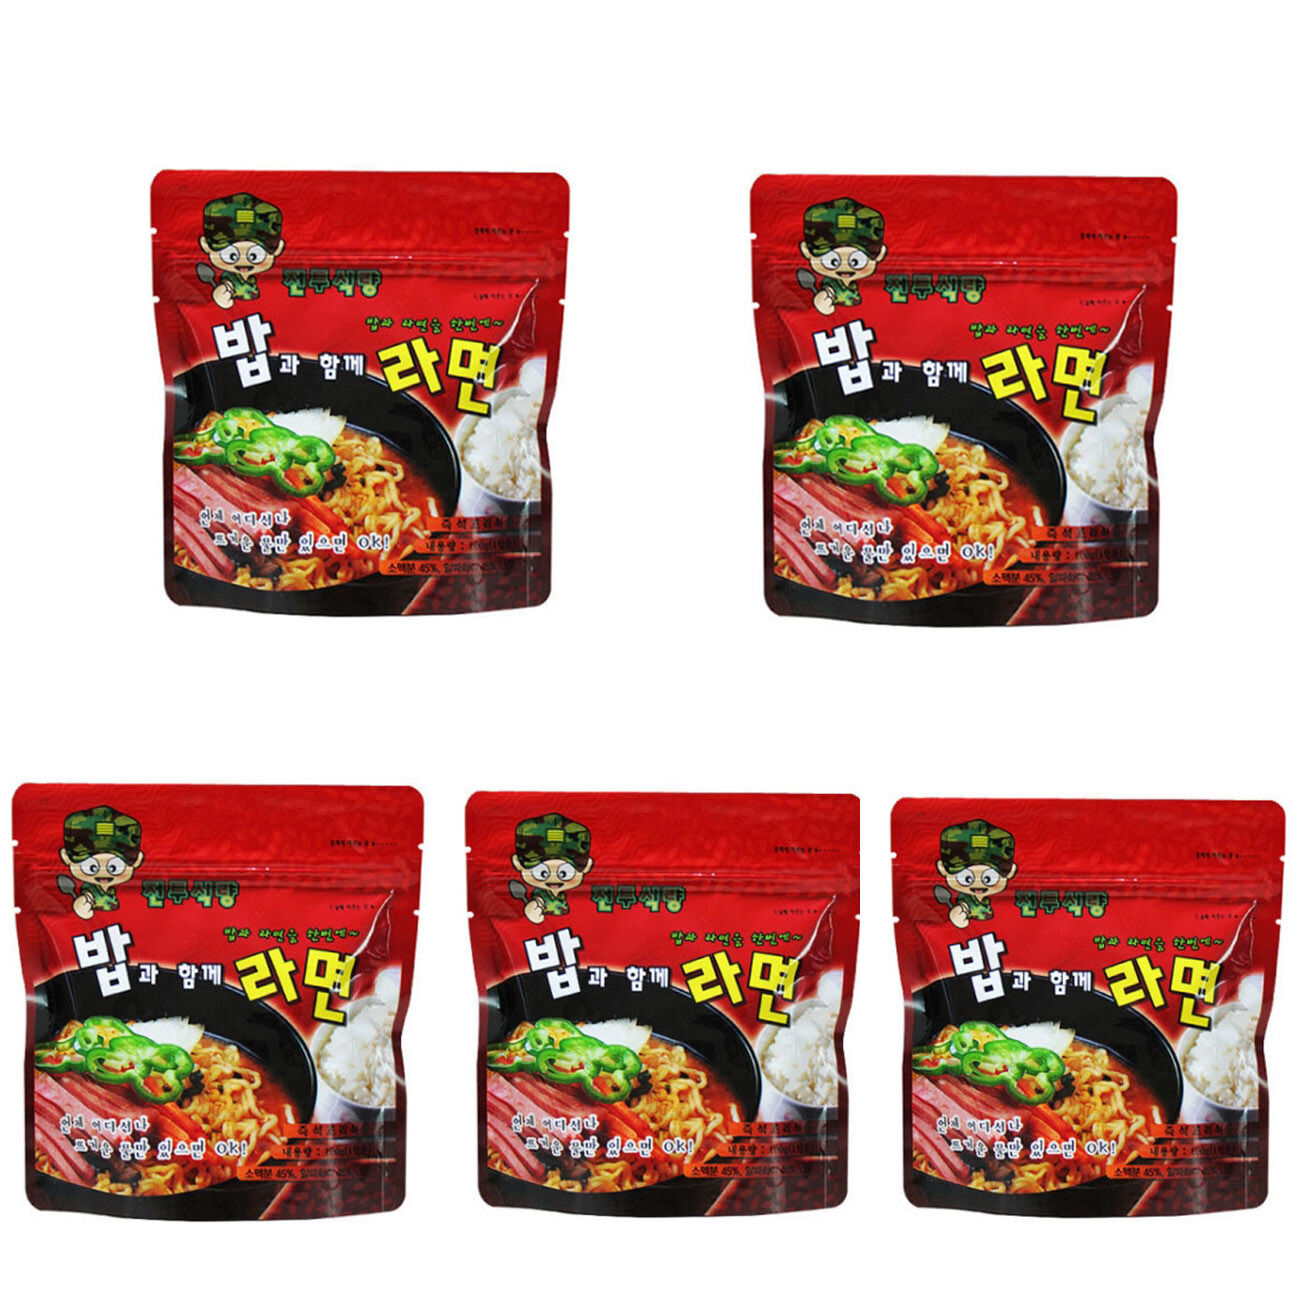 5Pcs Korean Military Food Camping Rice and Ramen Meal Combat Emergency Rations